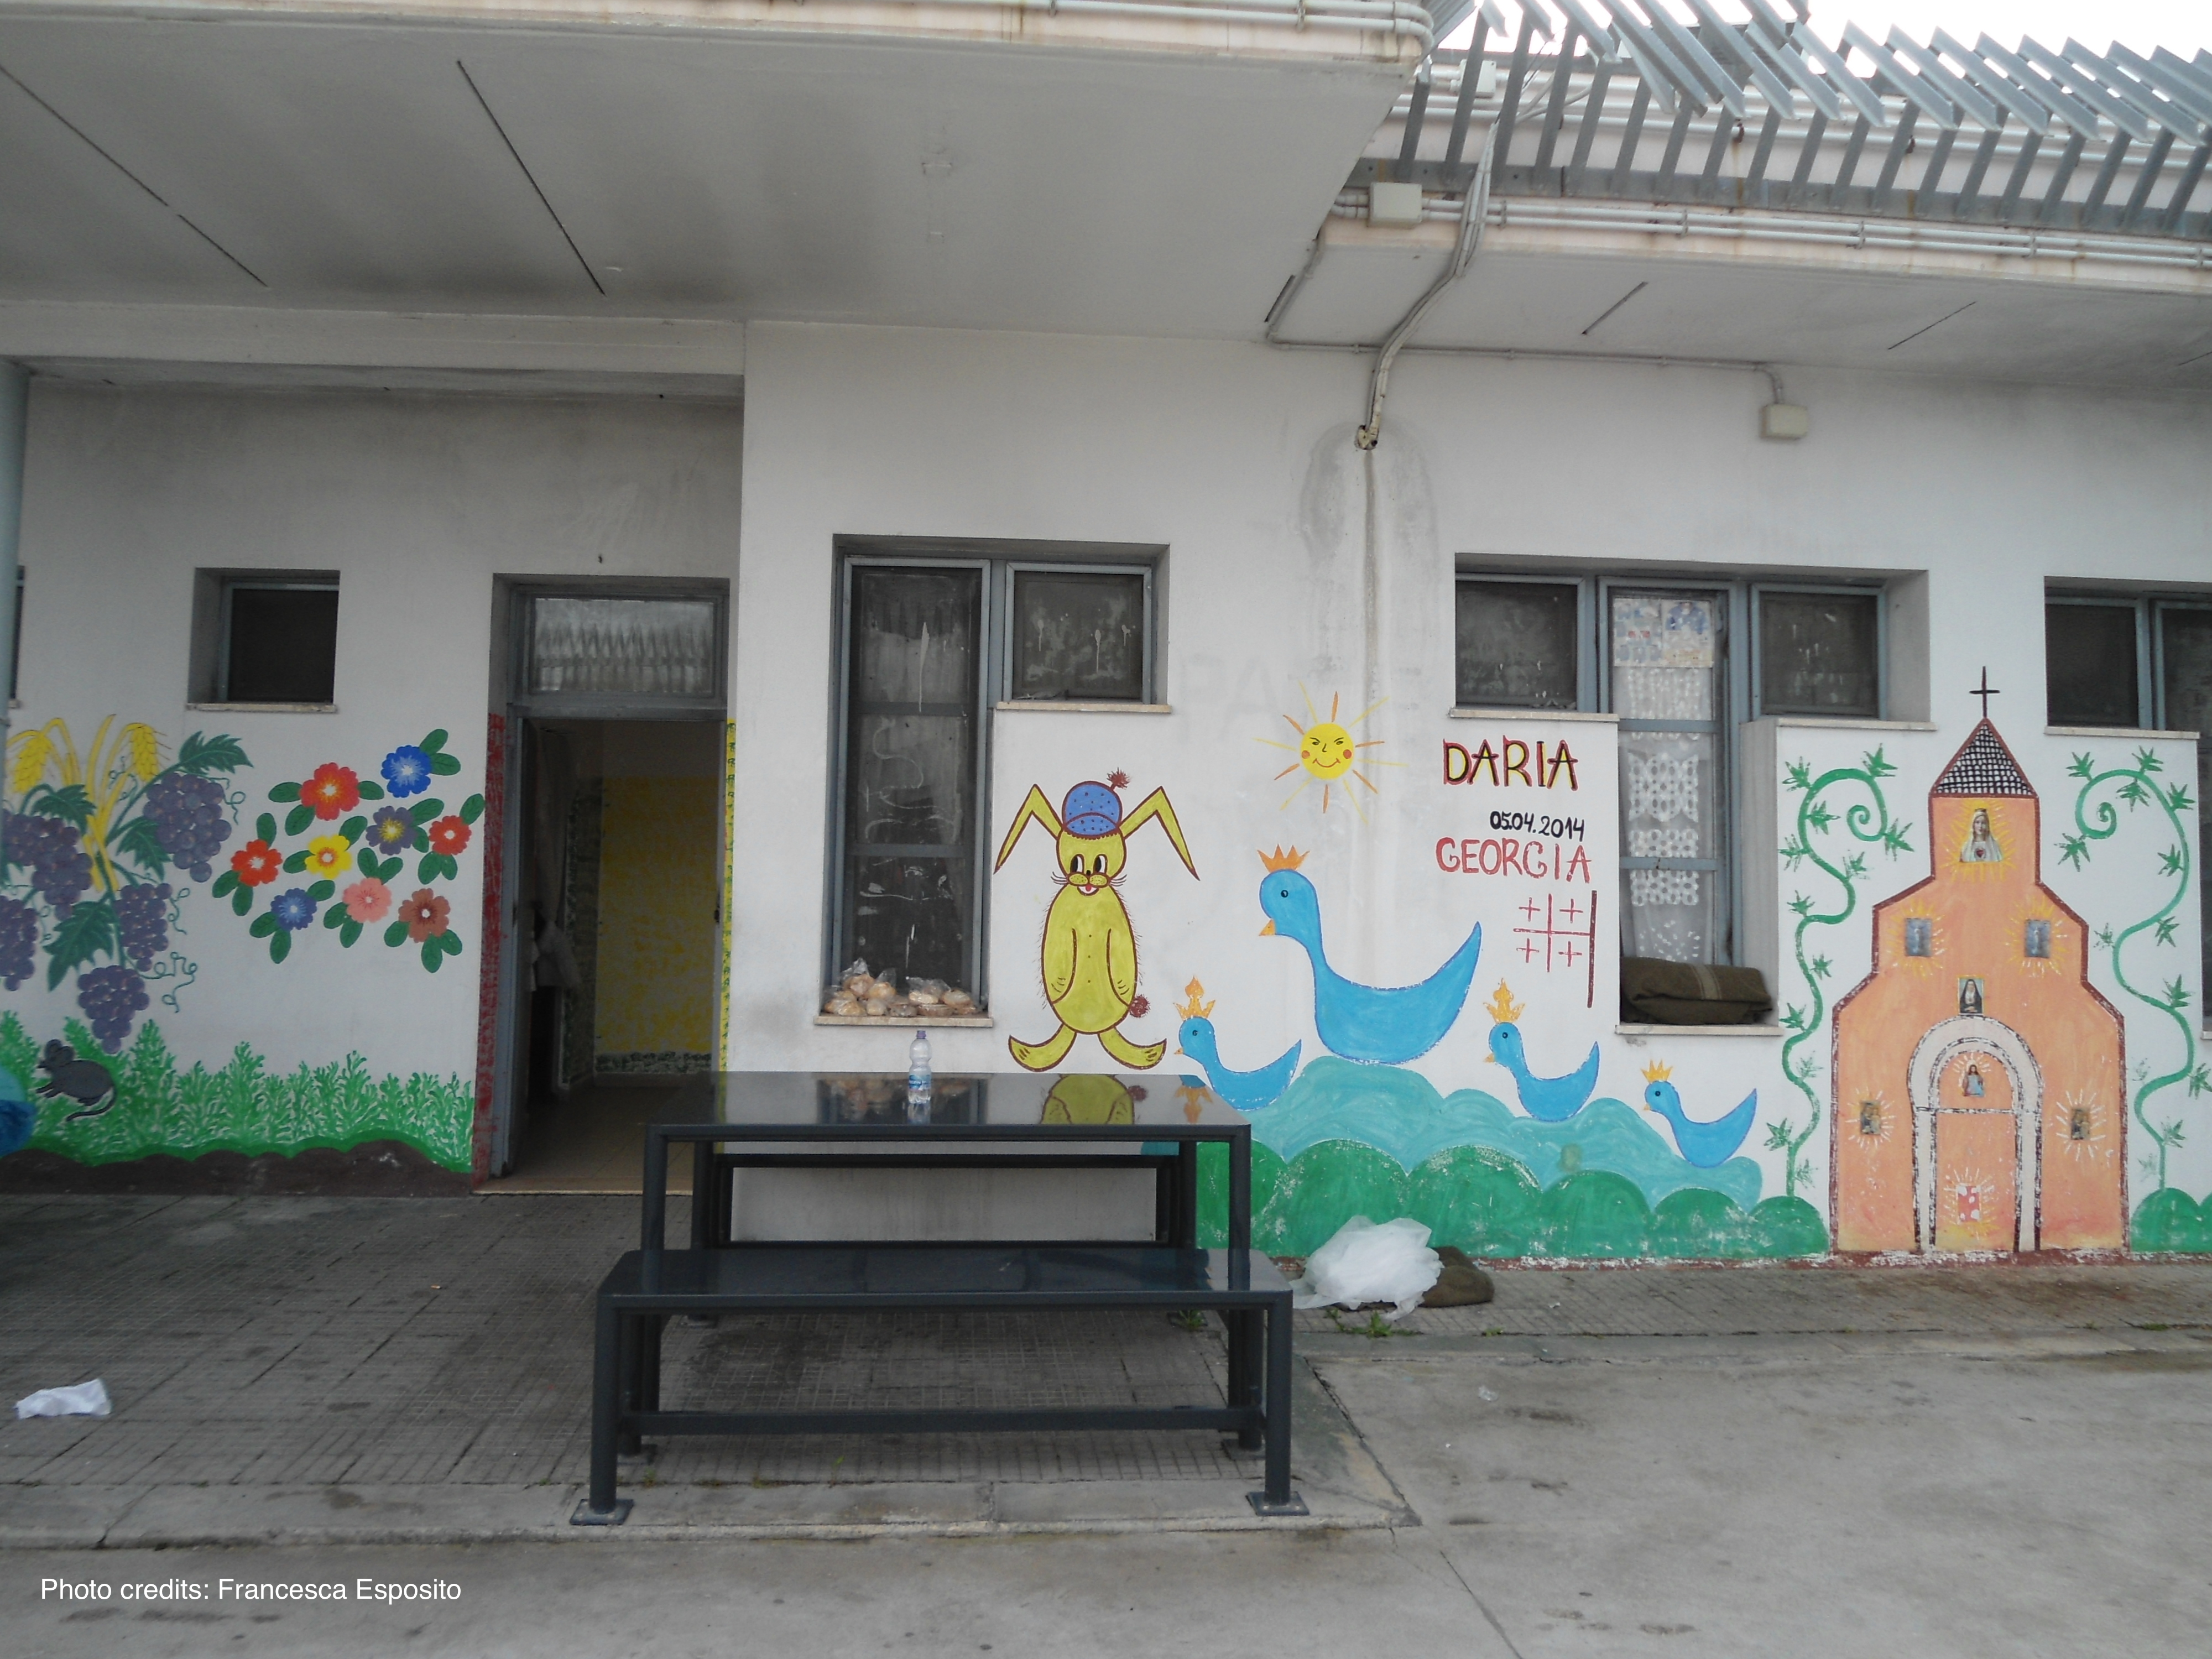 Rome's Ponte Galeria detention centre - Women's living unit